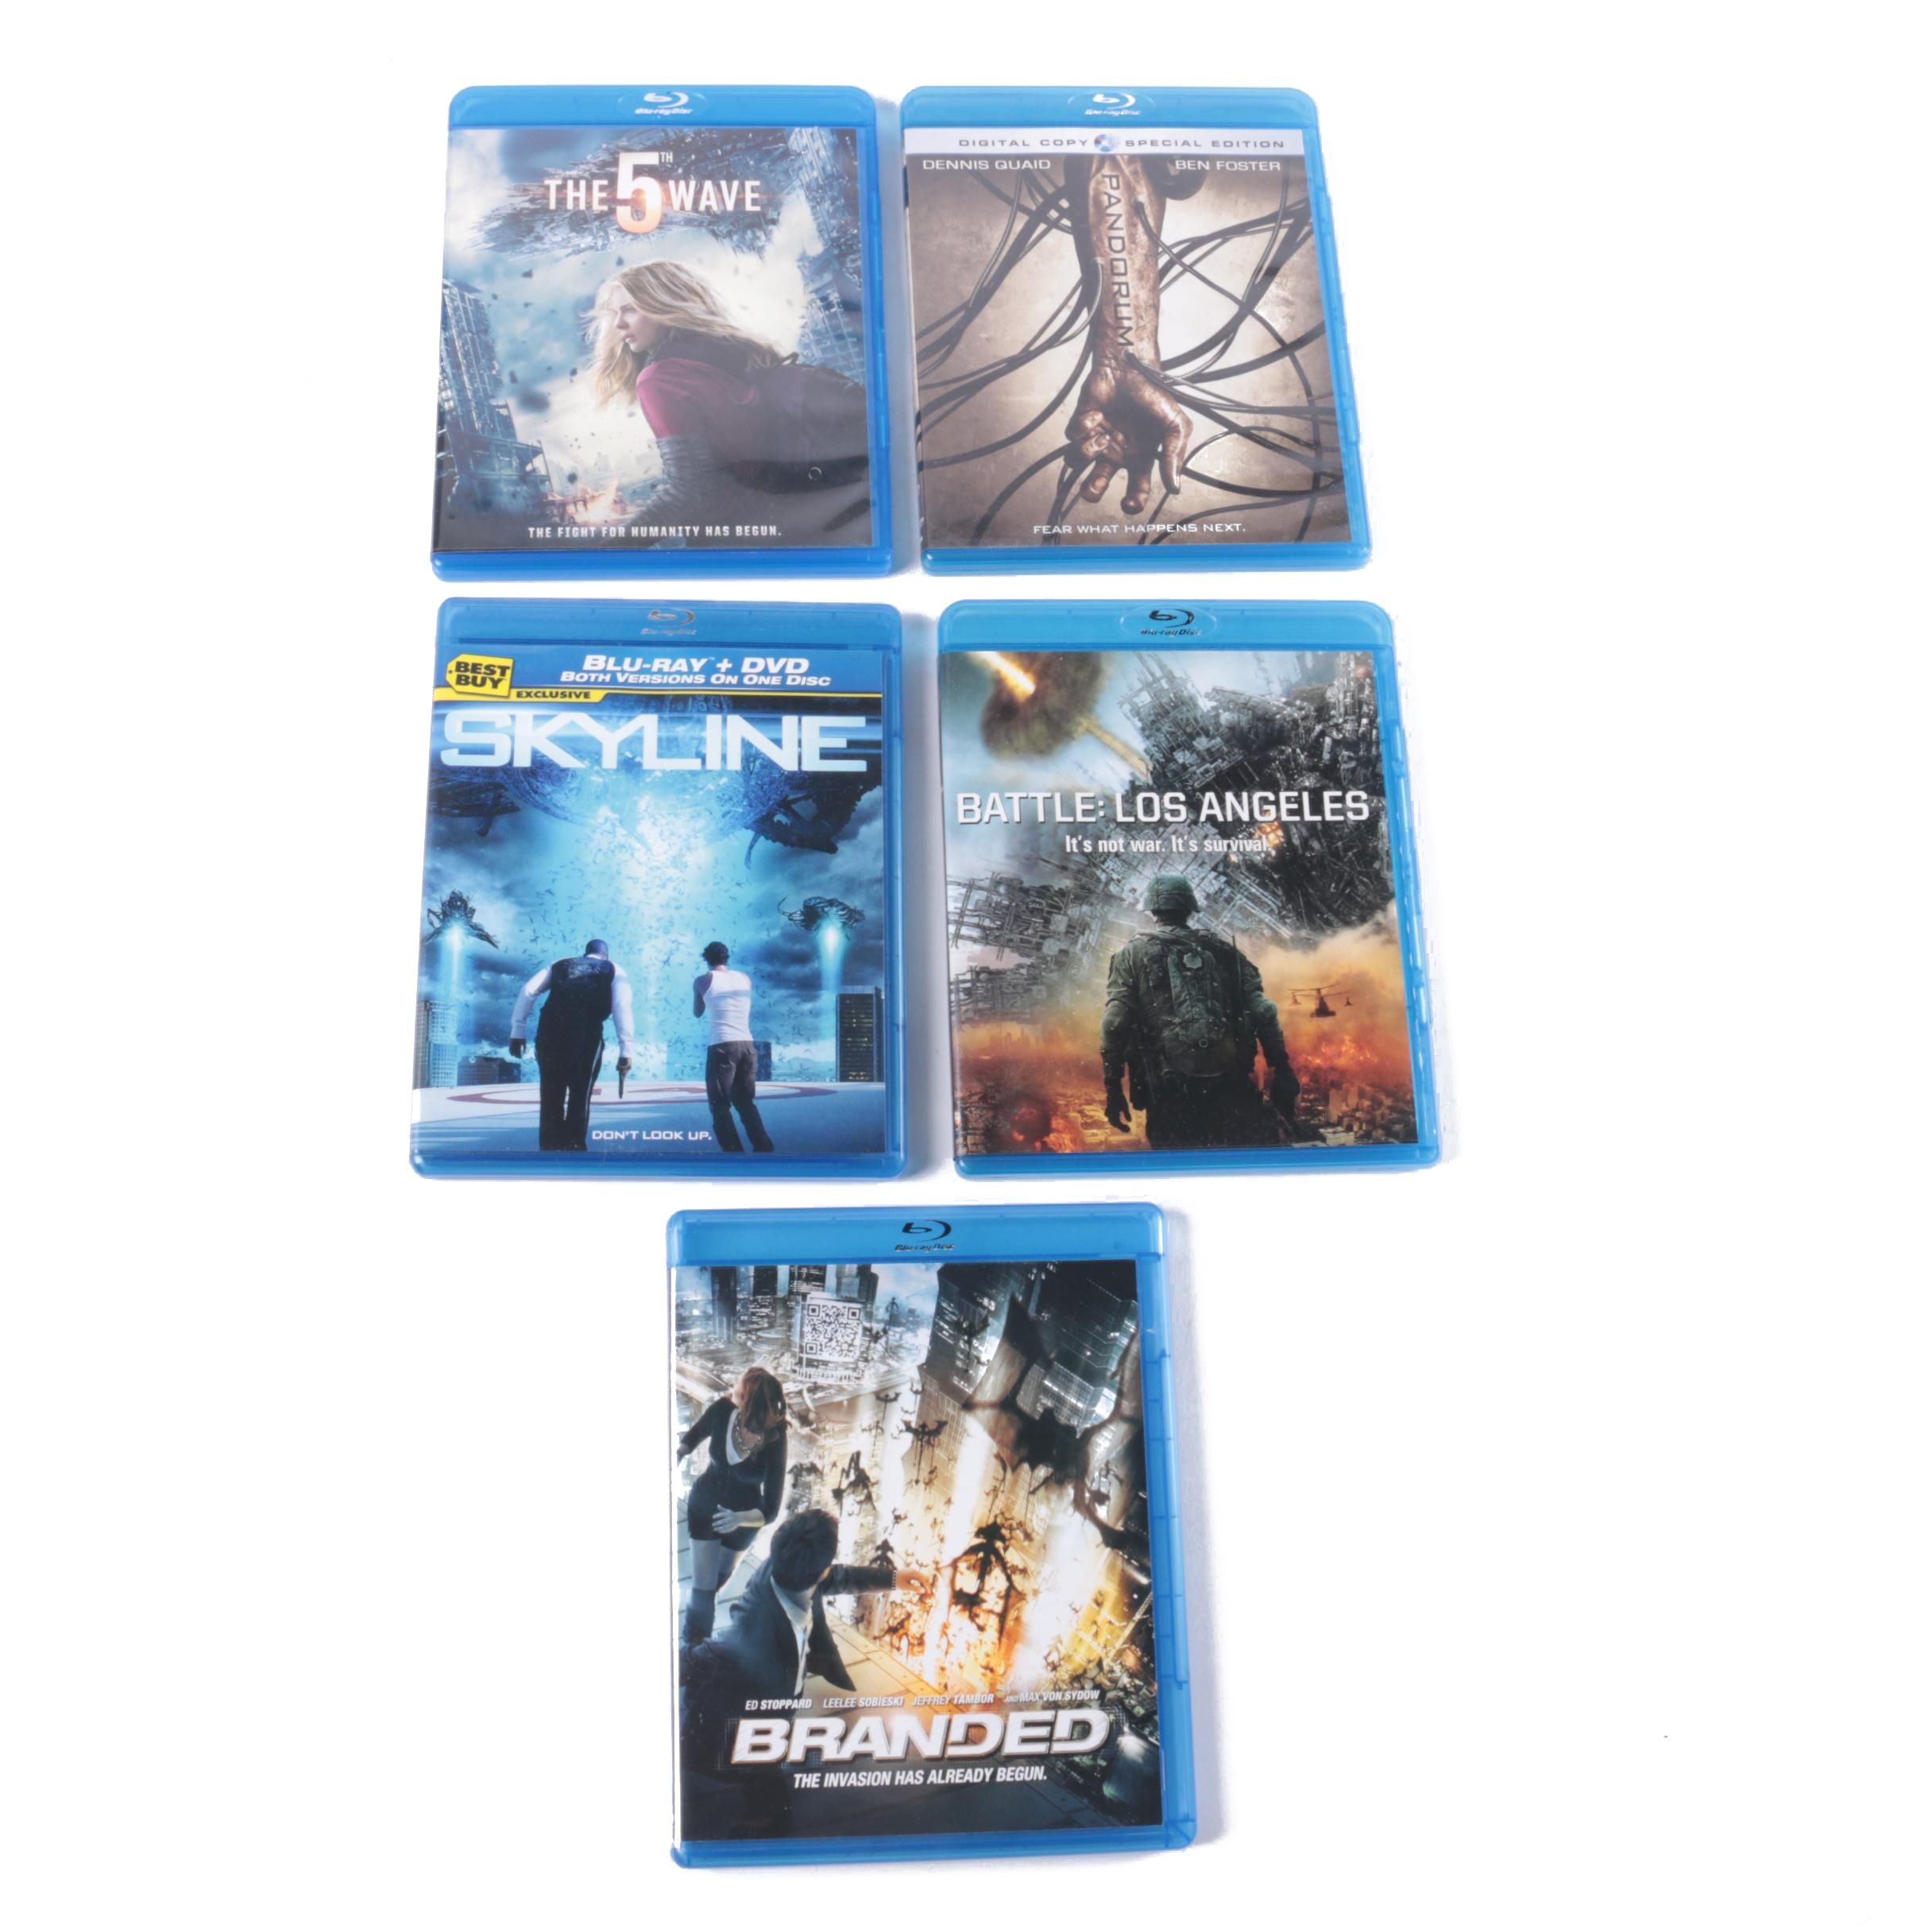 Alien Invasion Films Blu-ray Collection